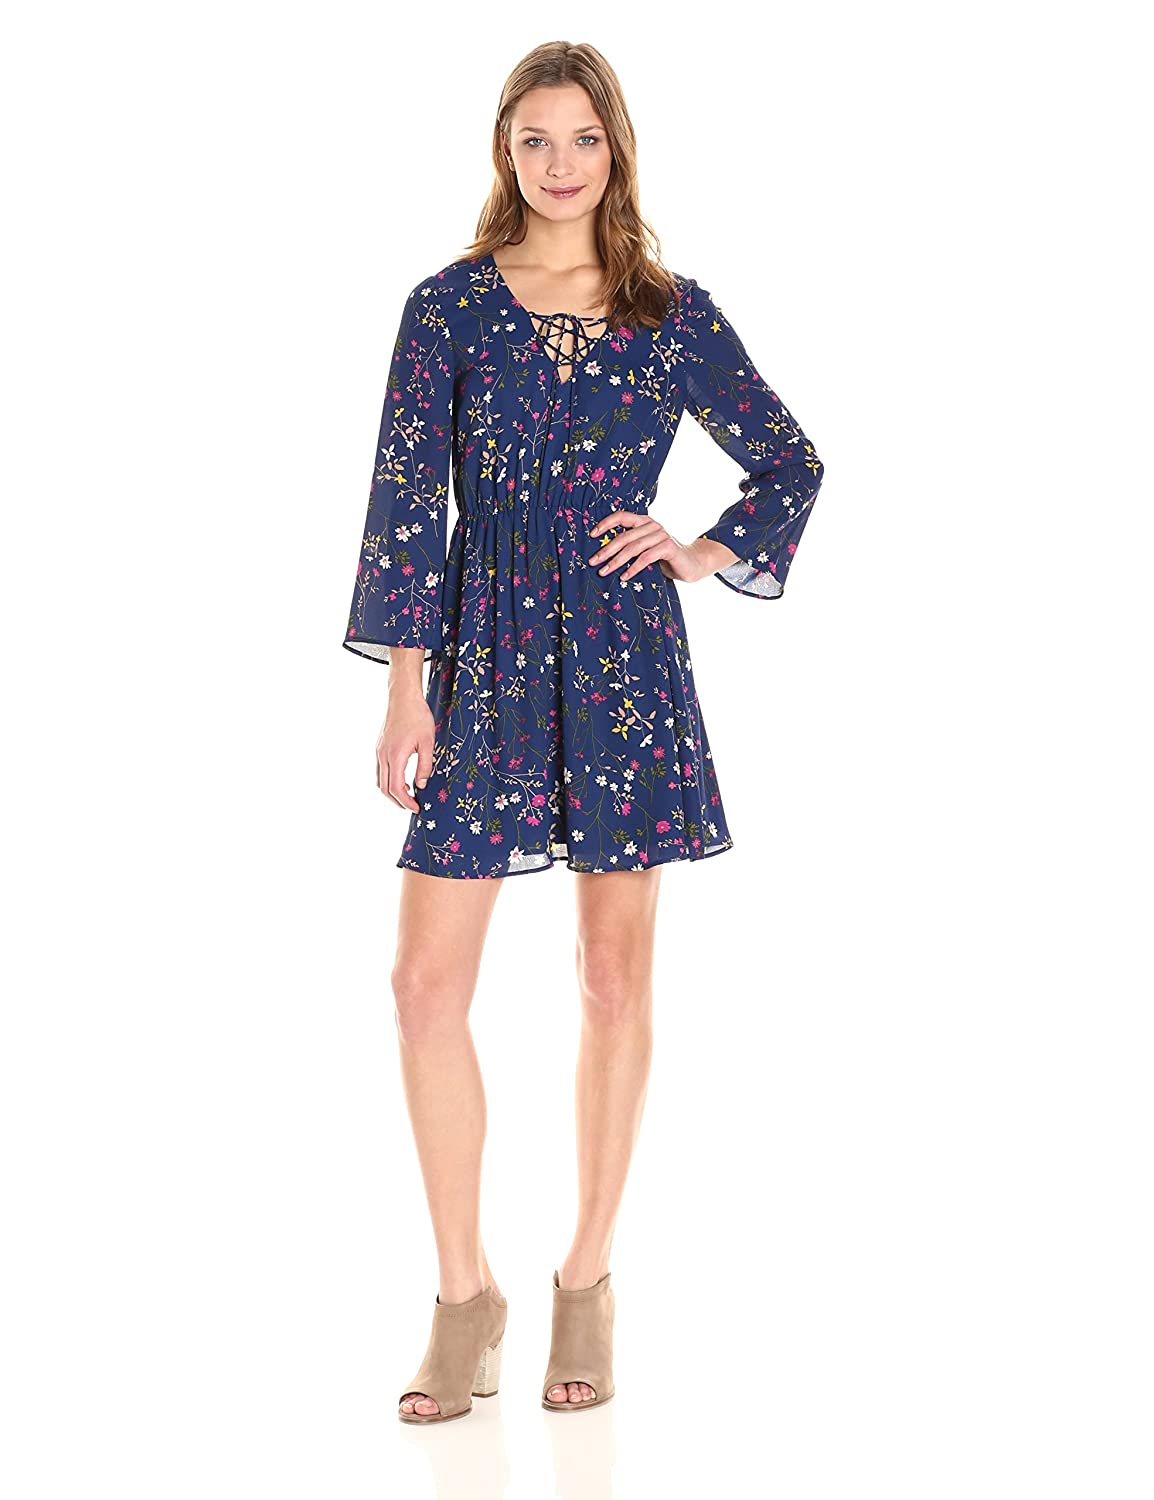 PARIS SUNDAY Womens Bell Sleeve Lace Up A-Line Georgette Dress